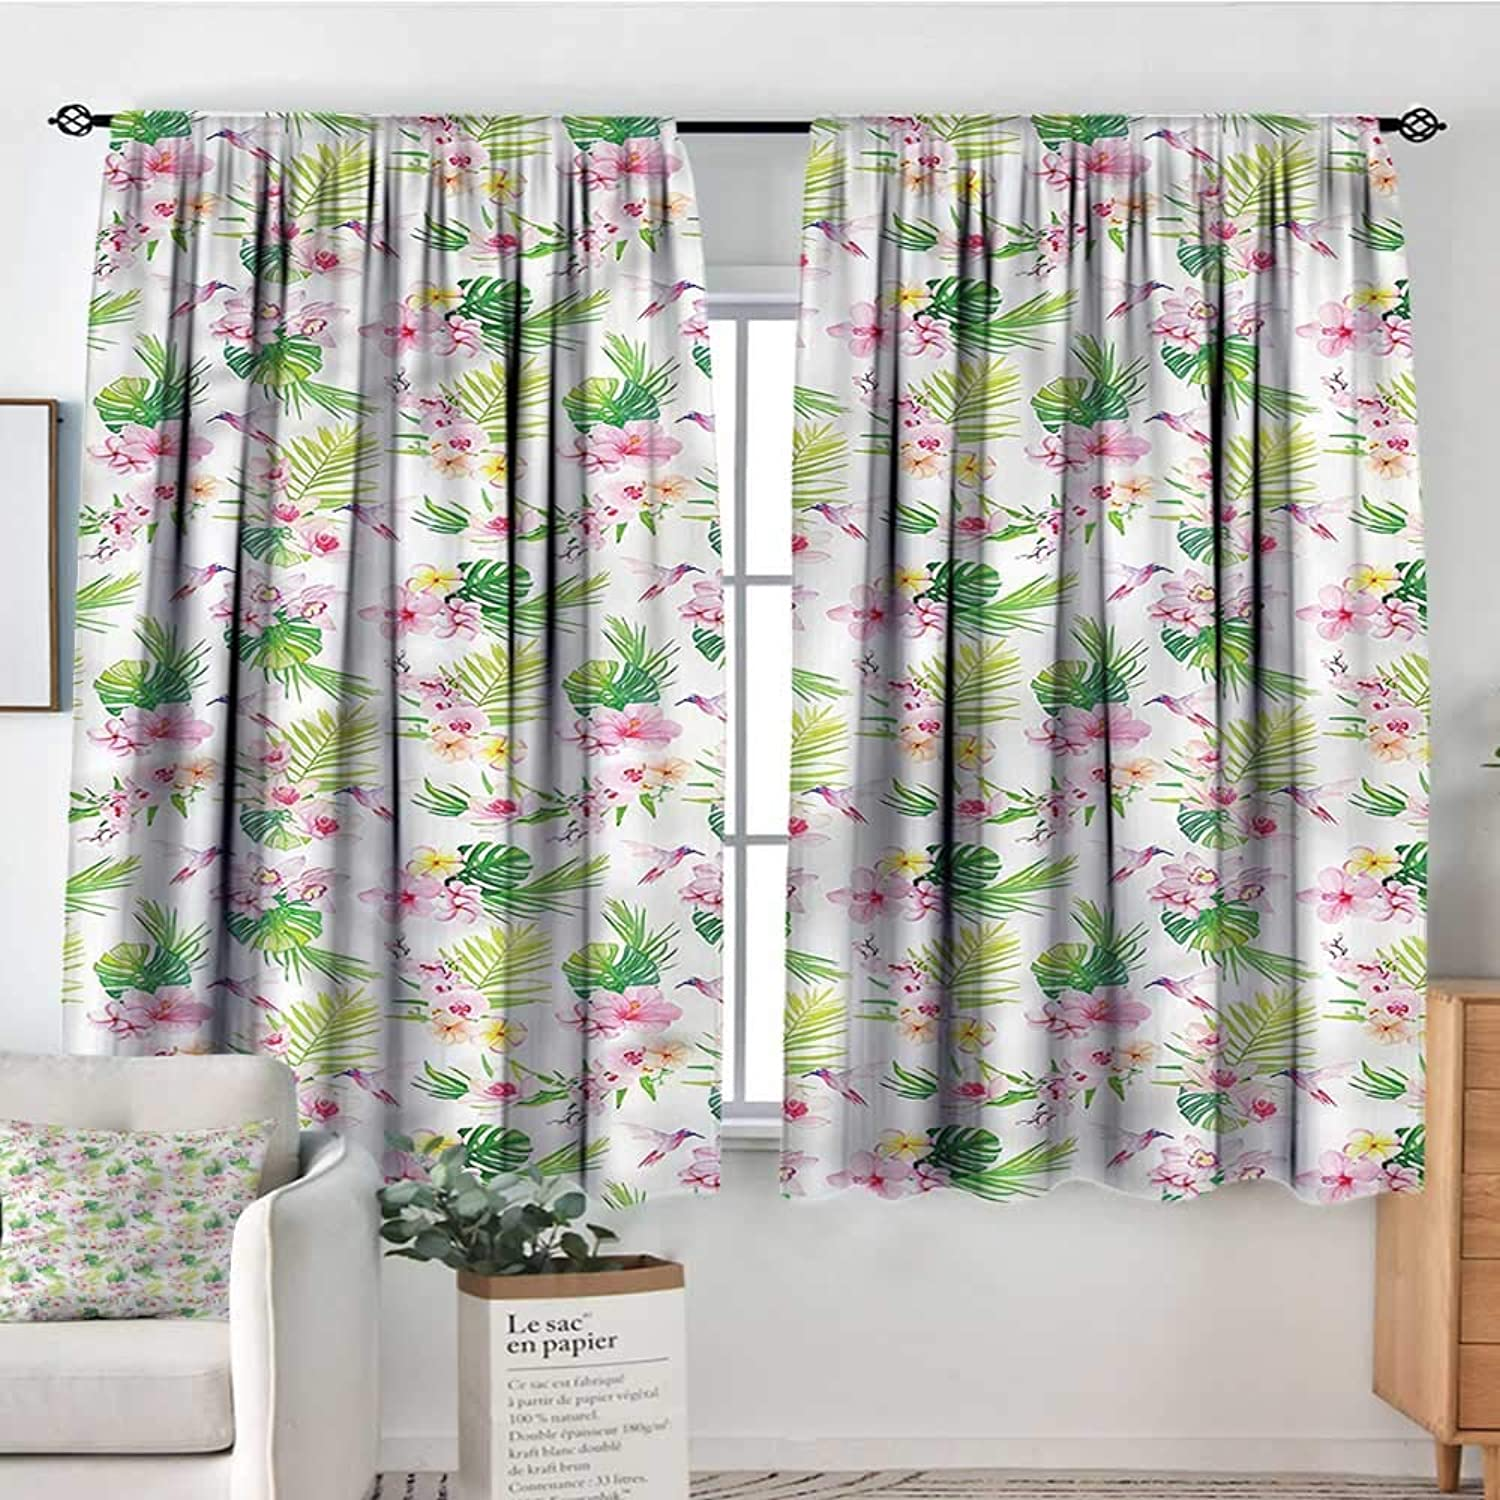 Sanring Luau,Backout Curtain Hawaiian Hibiscus Leaves 42 X72  Patterned Drape for Kids Bedroom